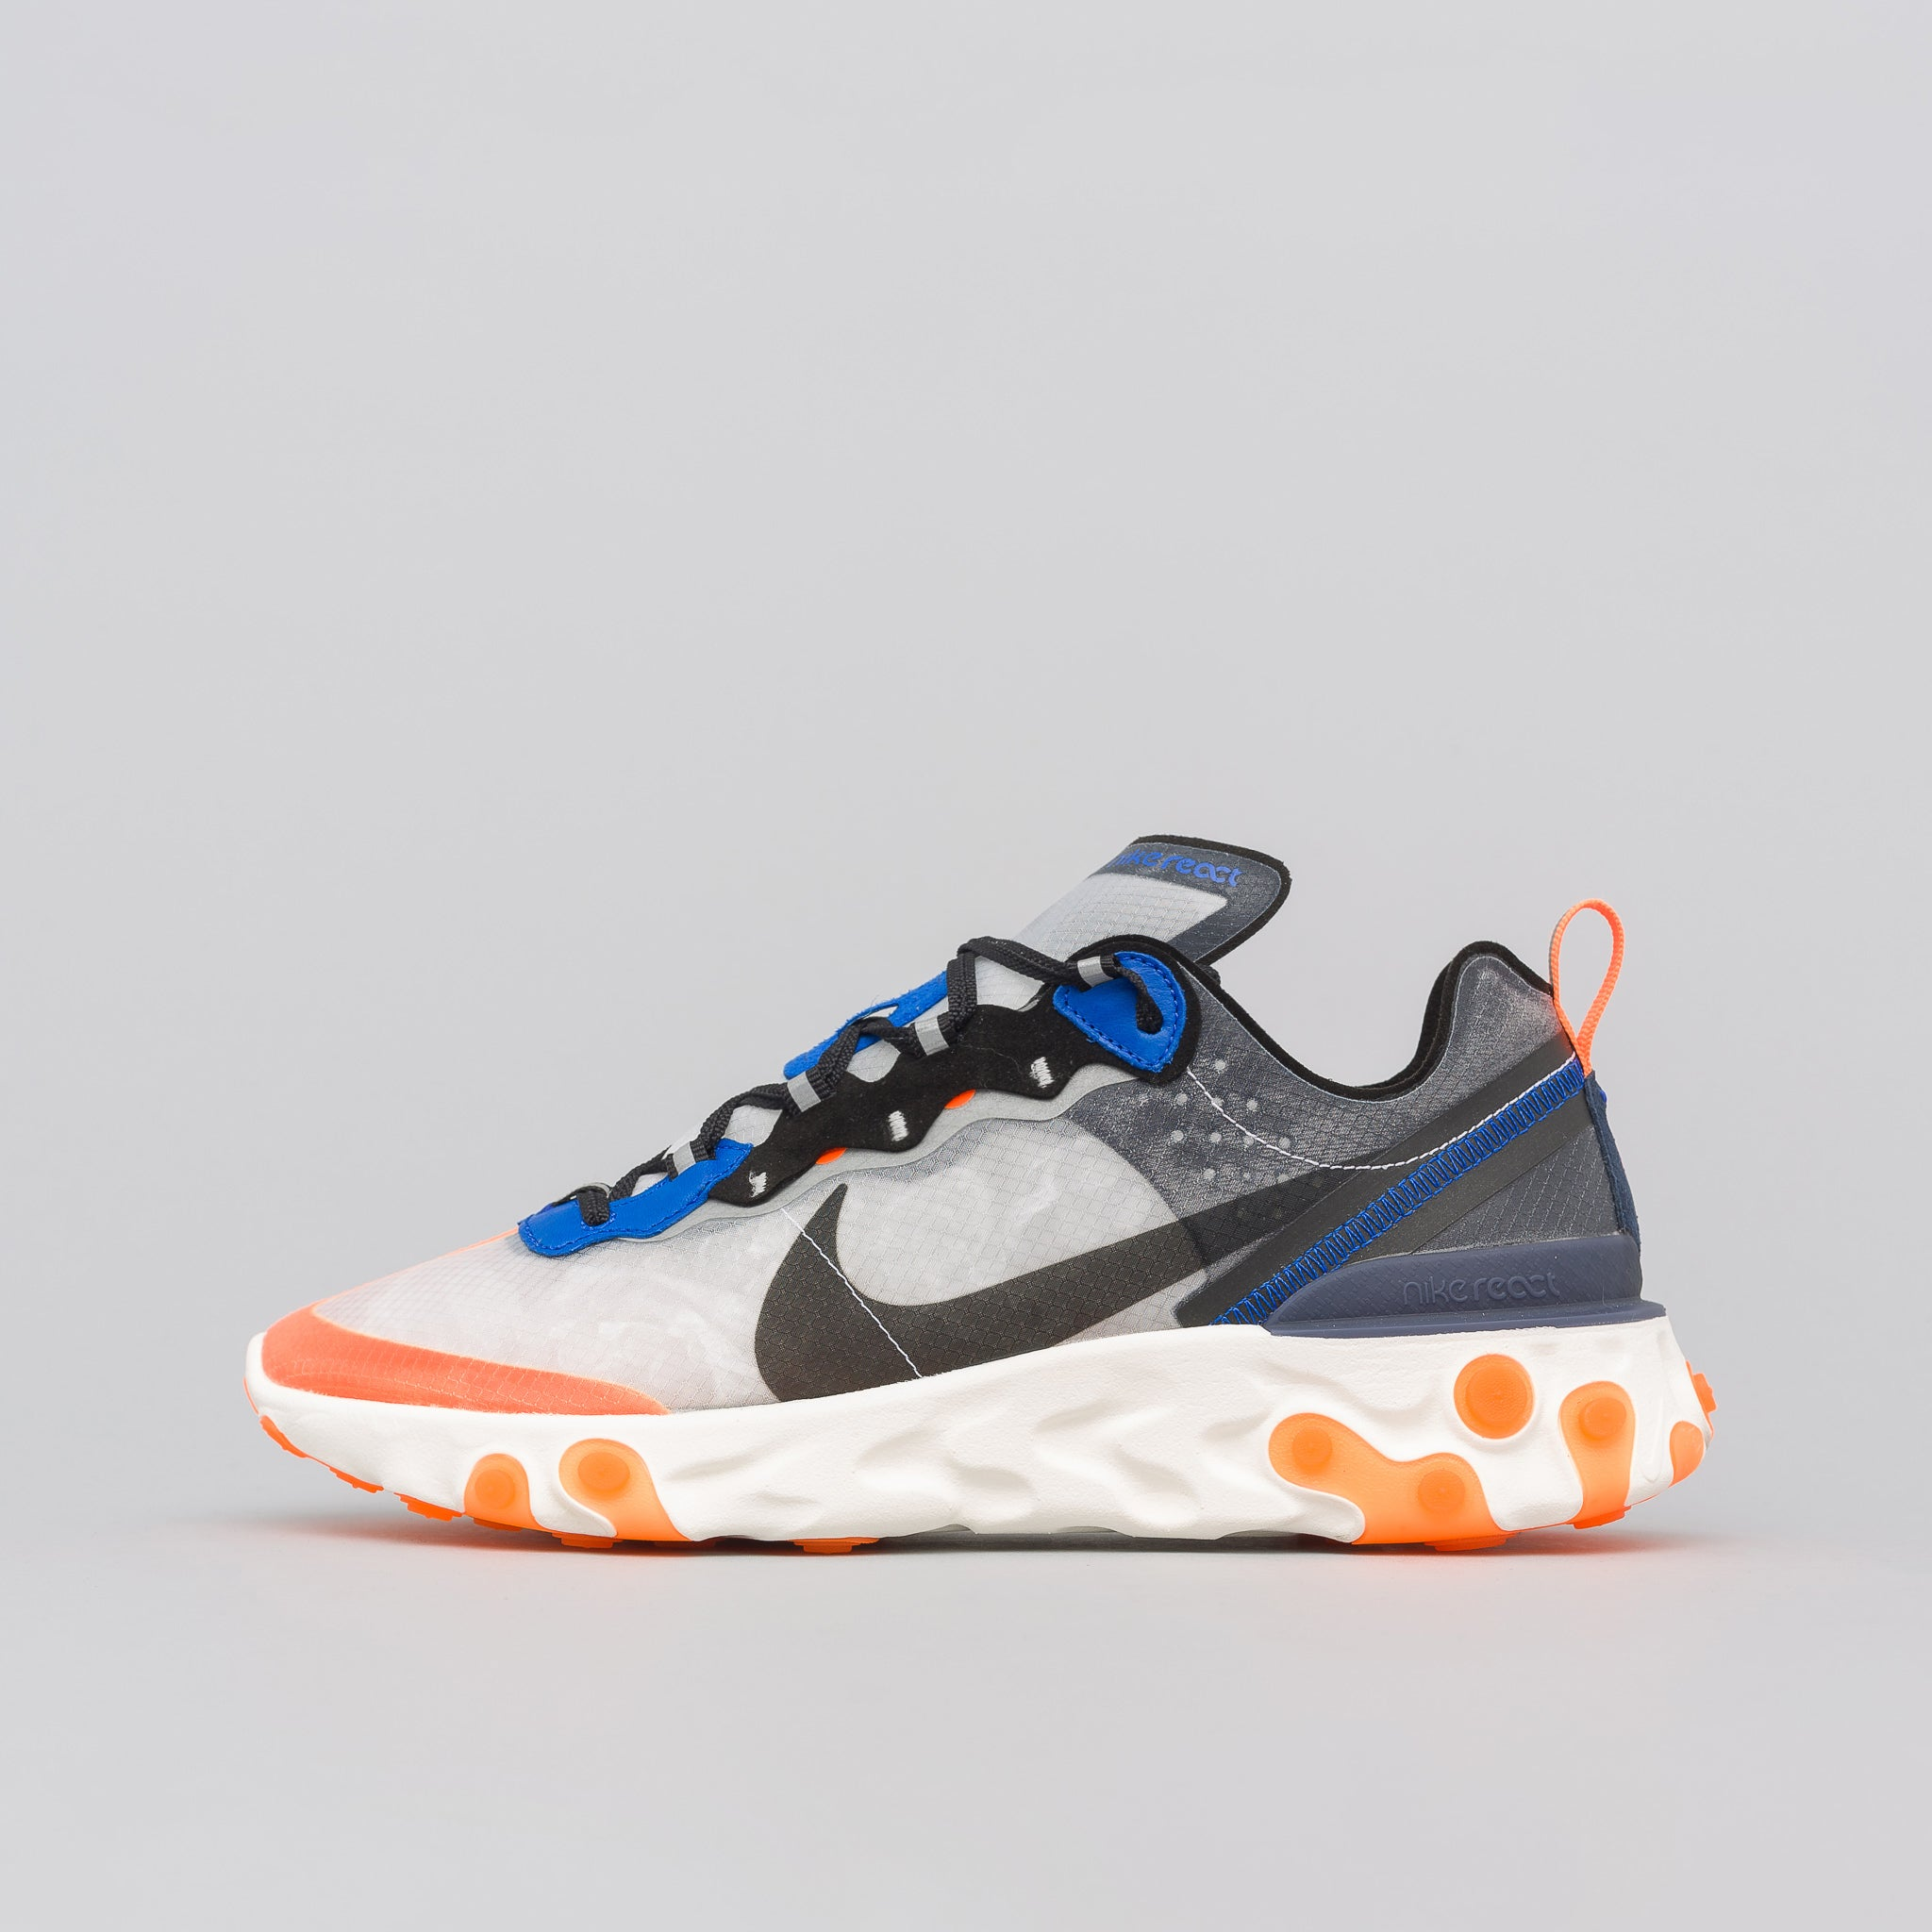 React Element 87 in Wolf Grey/Black/Thunder Blue